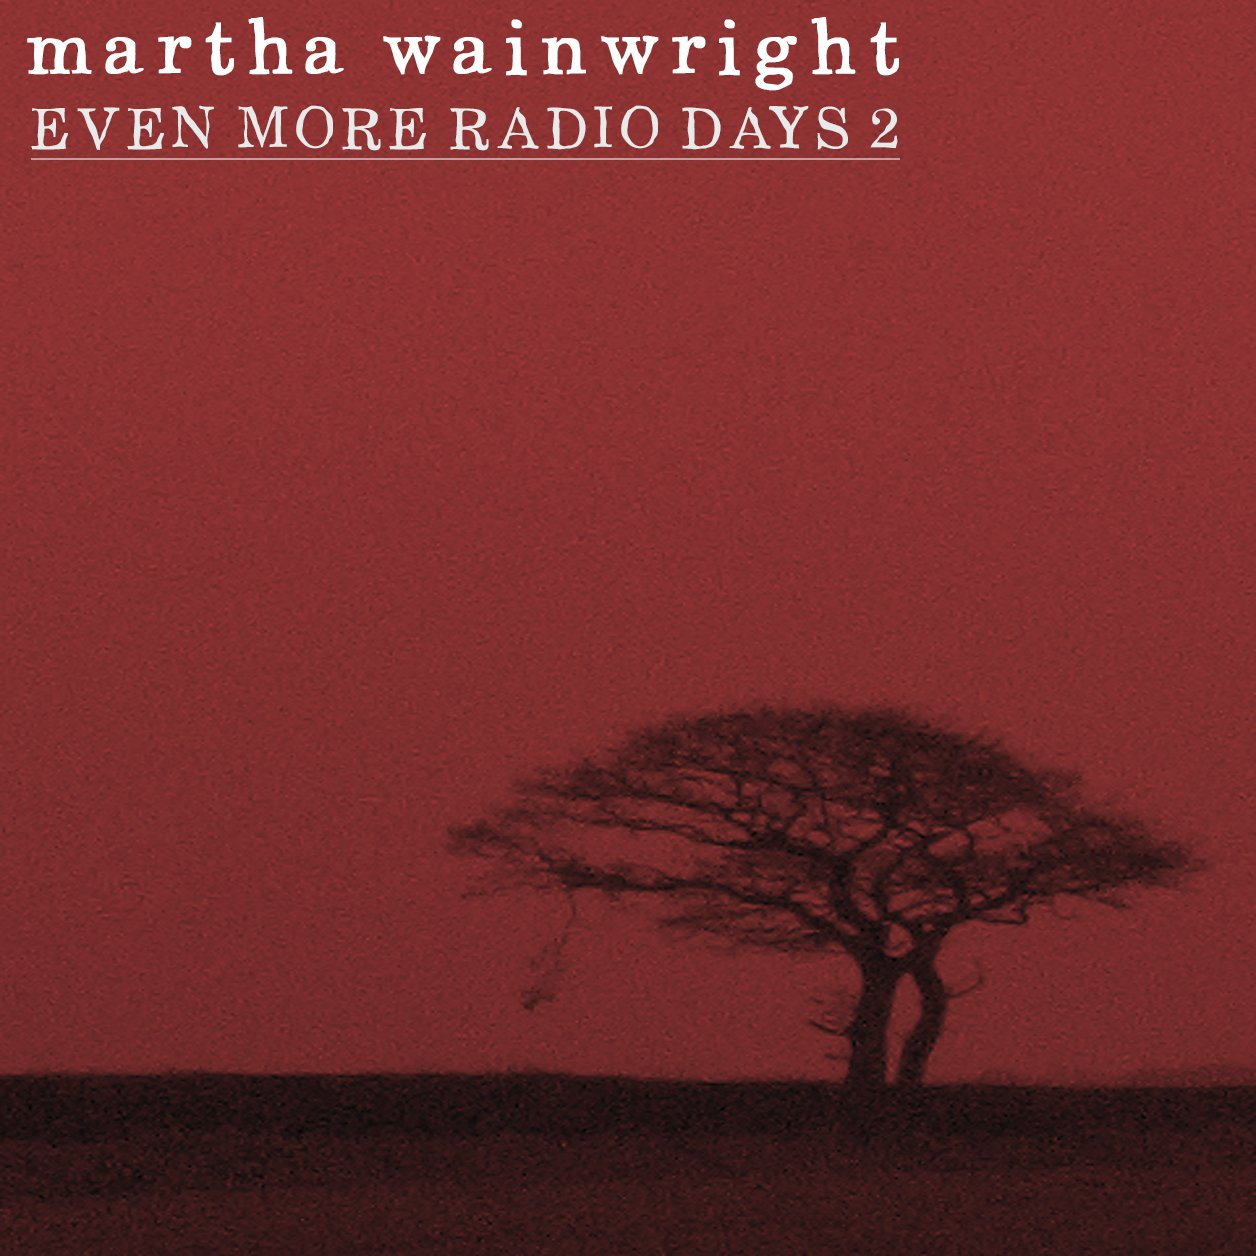 MARTHA WAINWRIGHT : EVEN MORE RADIO DAYS 2 CD